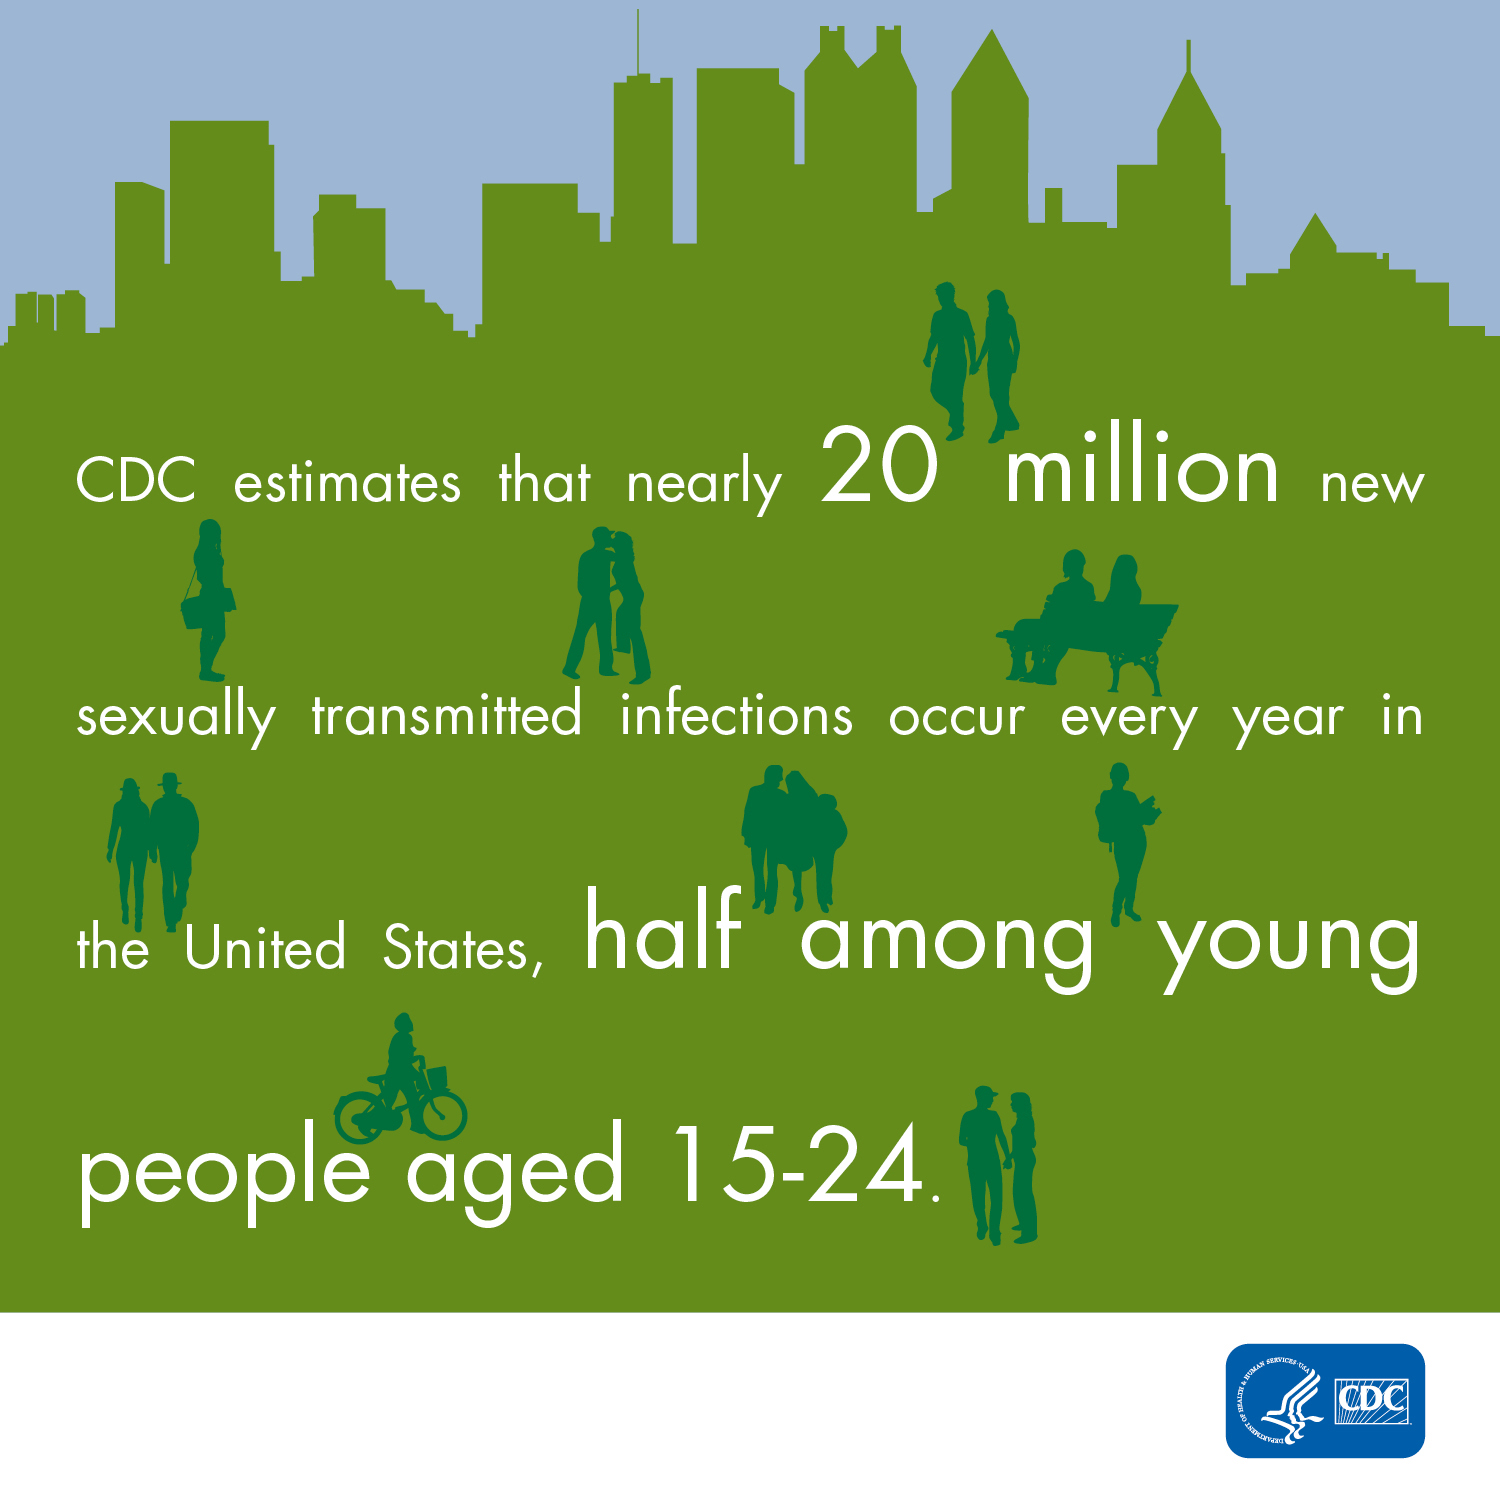 CDC estimates that nearly 20 million new sexually transmitted infections occur every year in the United States, half among young people ages 15-24.